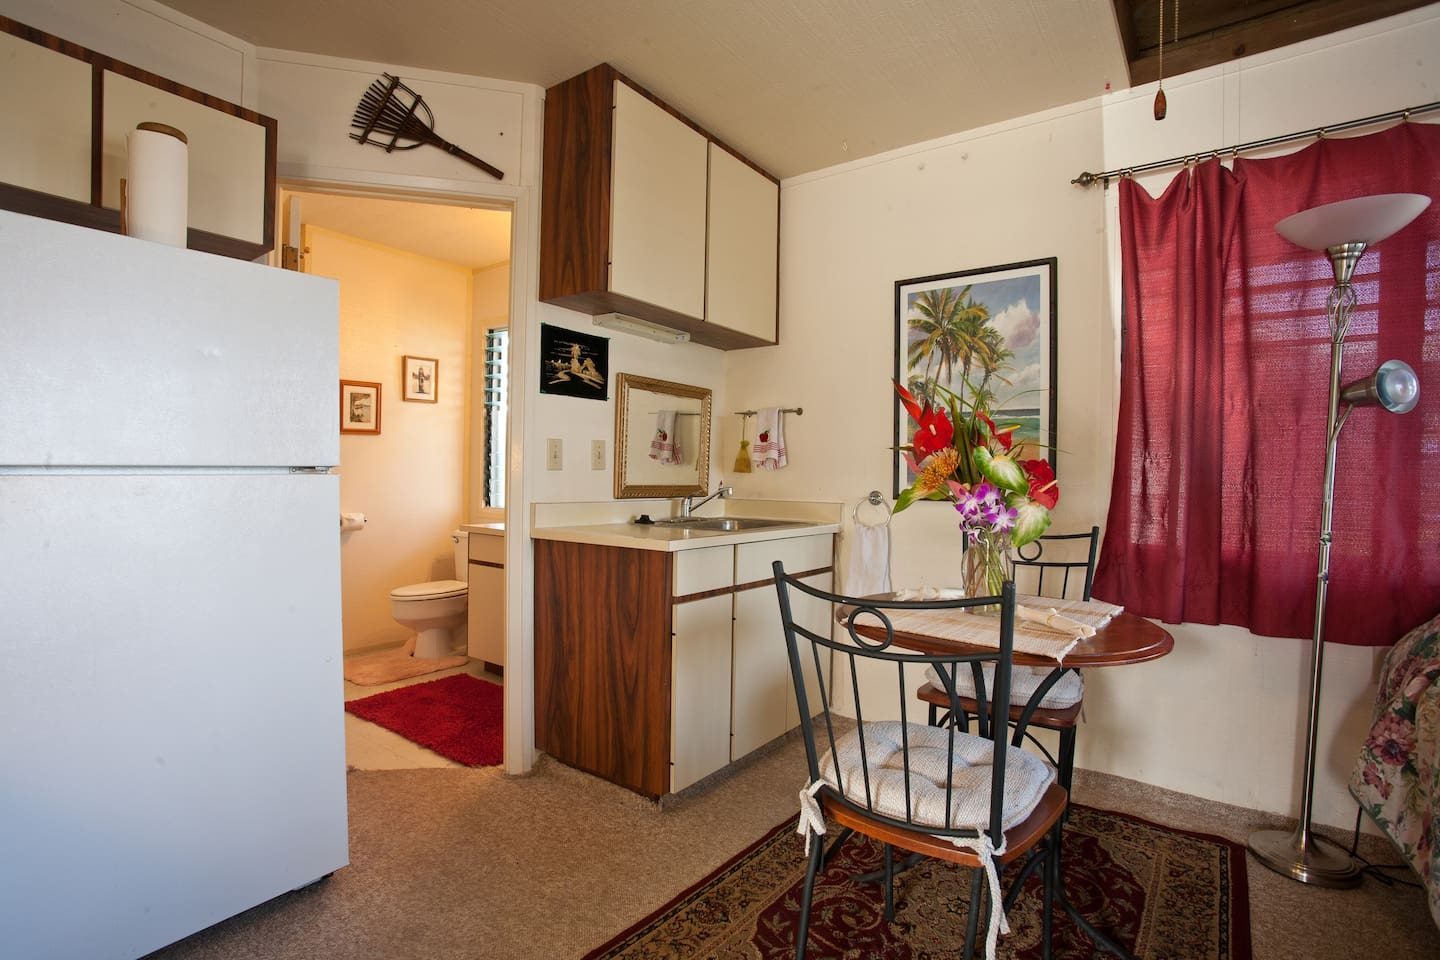 Shows kitchenette and full size refer and small bistro table. Most people eat outside on the private lanai